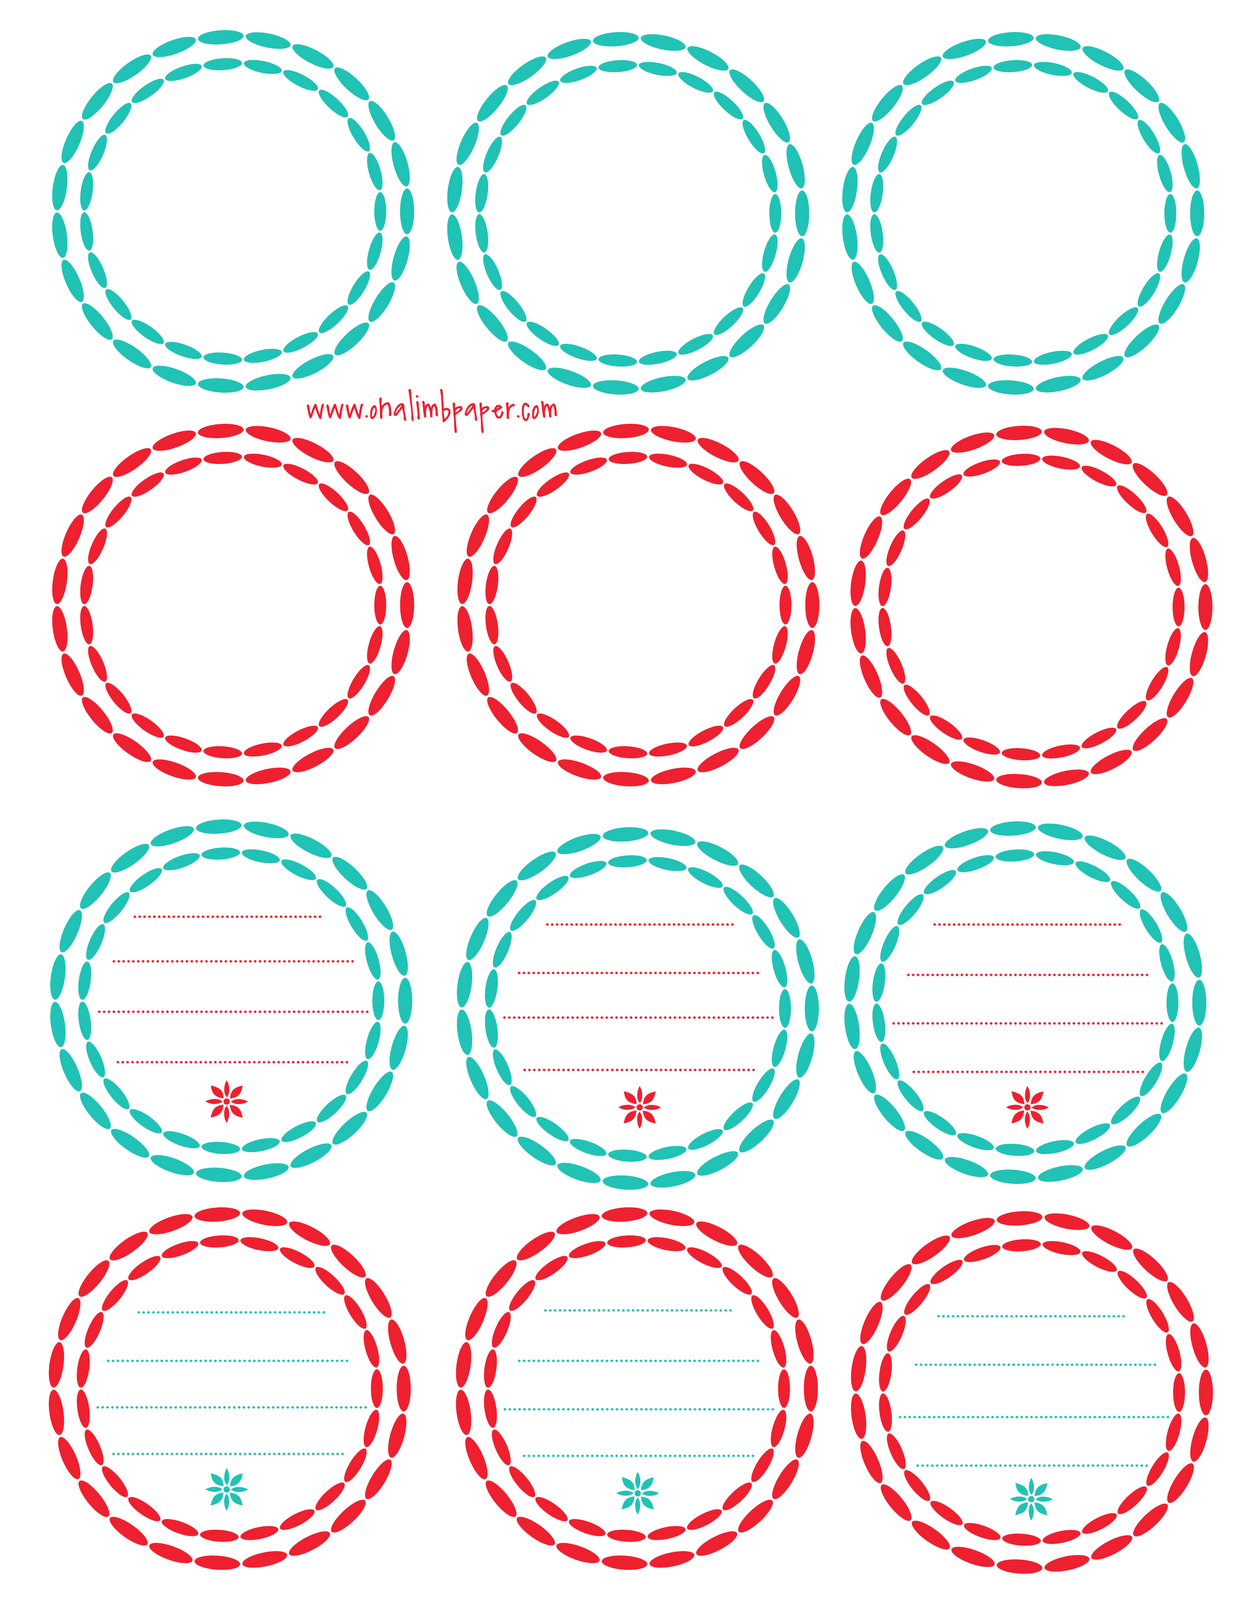 6 Images of Printable Circle Gift Tags